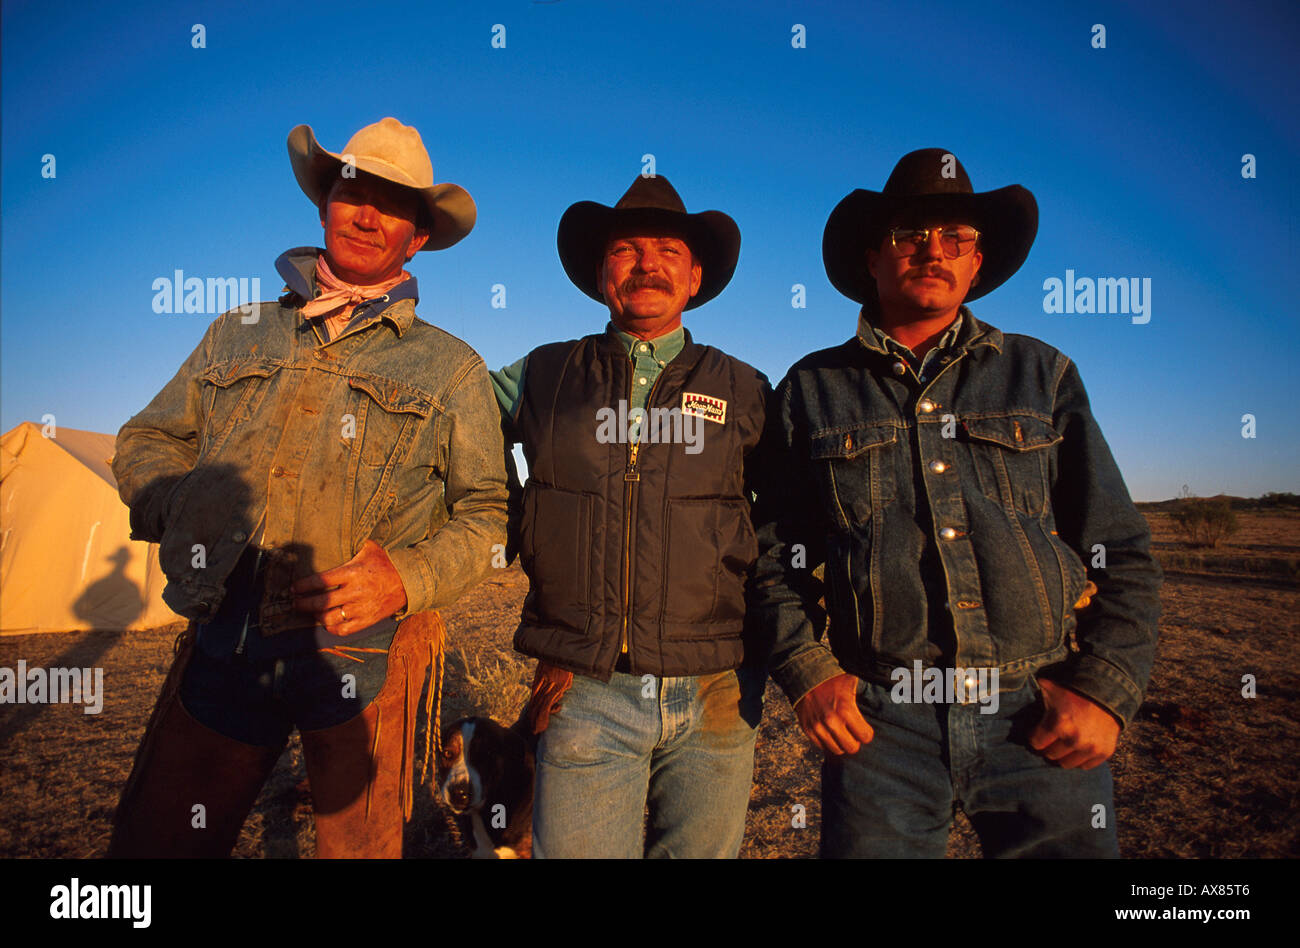 64bdb887812 Cowboys from the LX Ranch